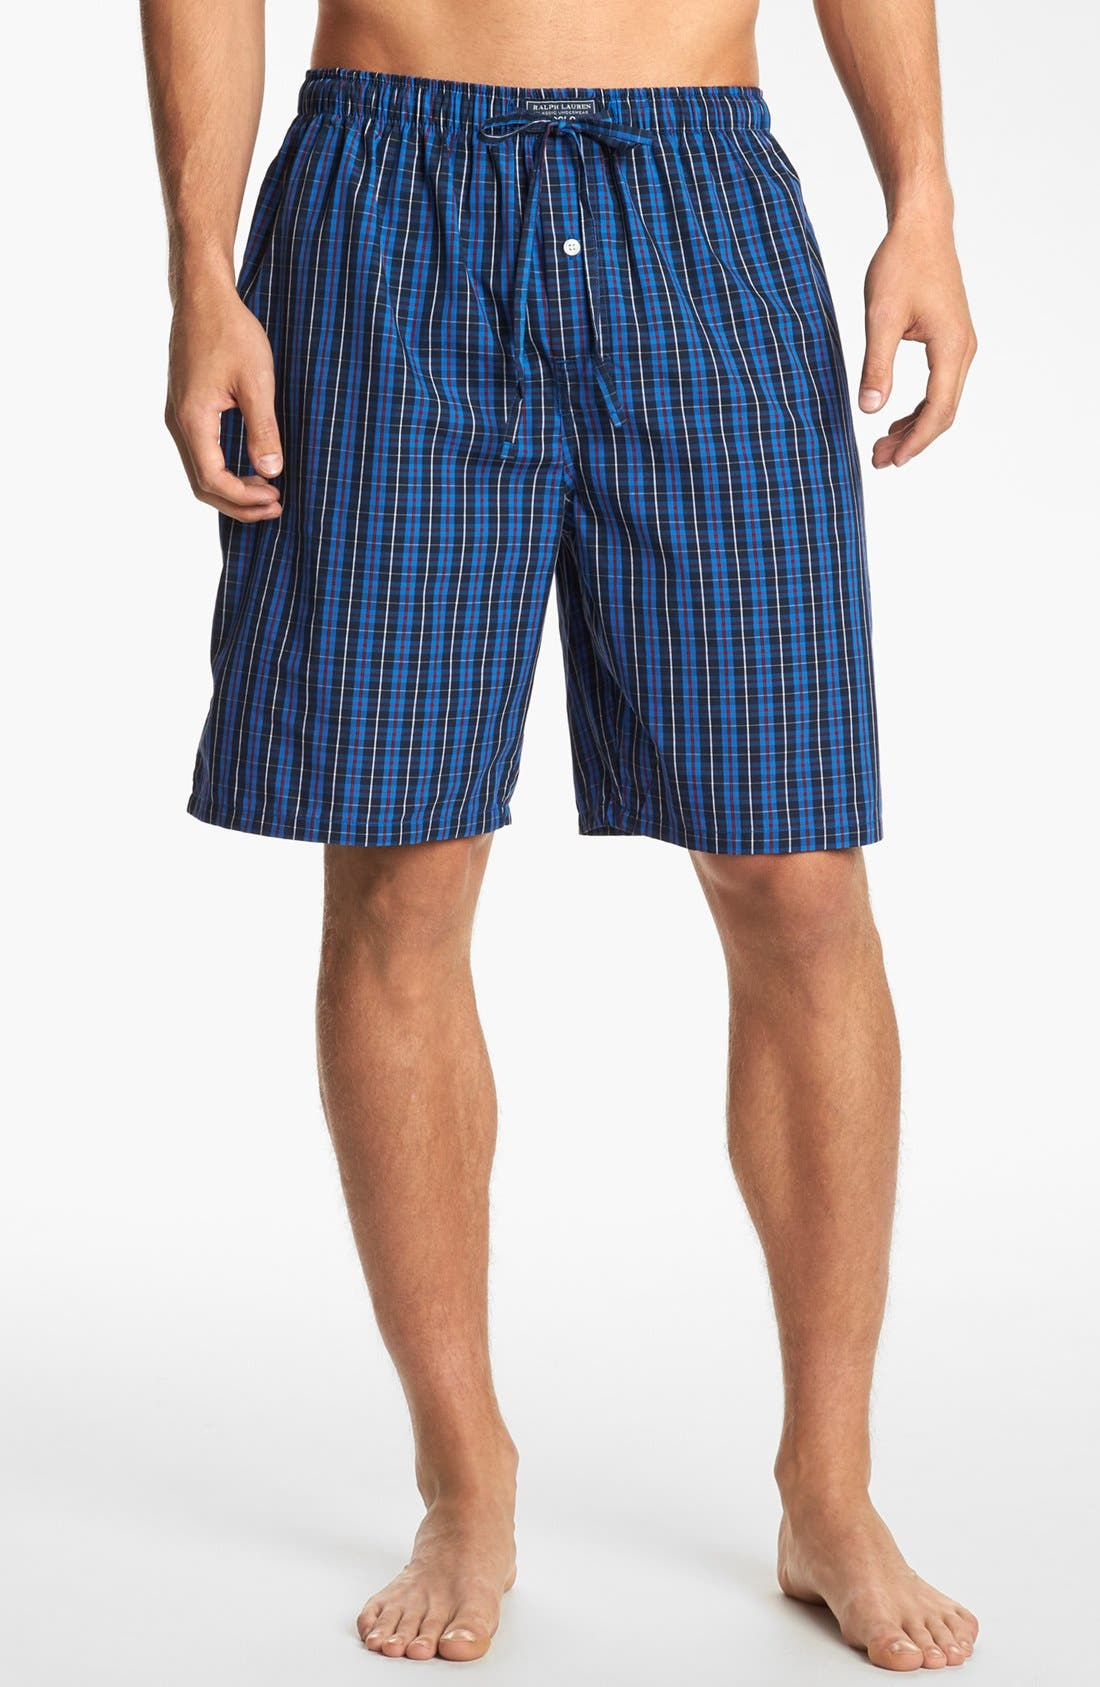 Alternate Image 1 Selected - Polo Ralph Lauren Woven Pajama Shorts